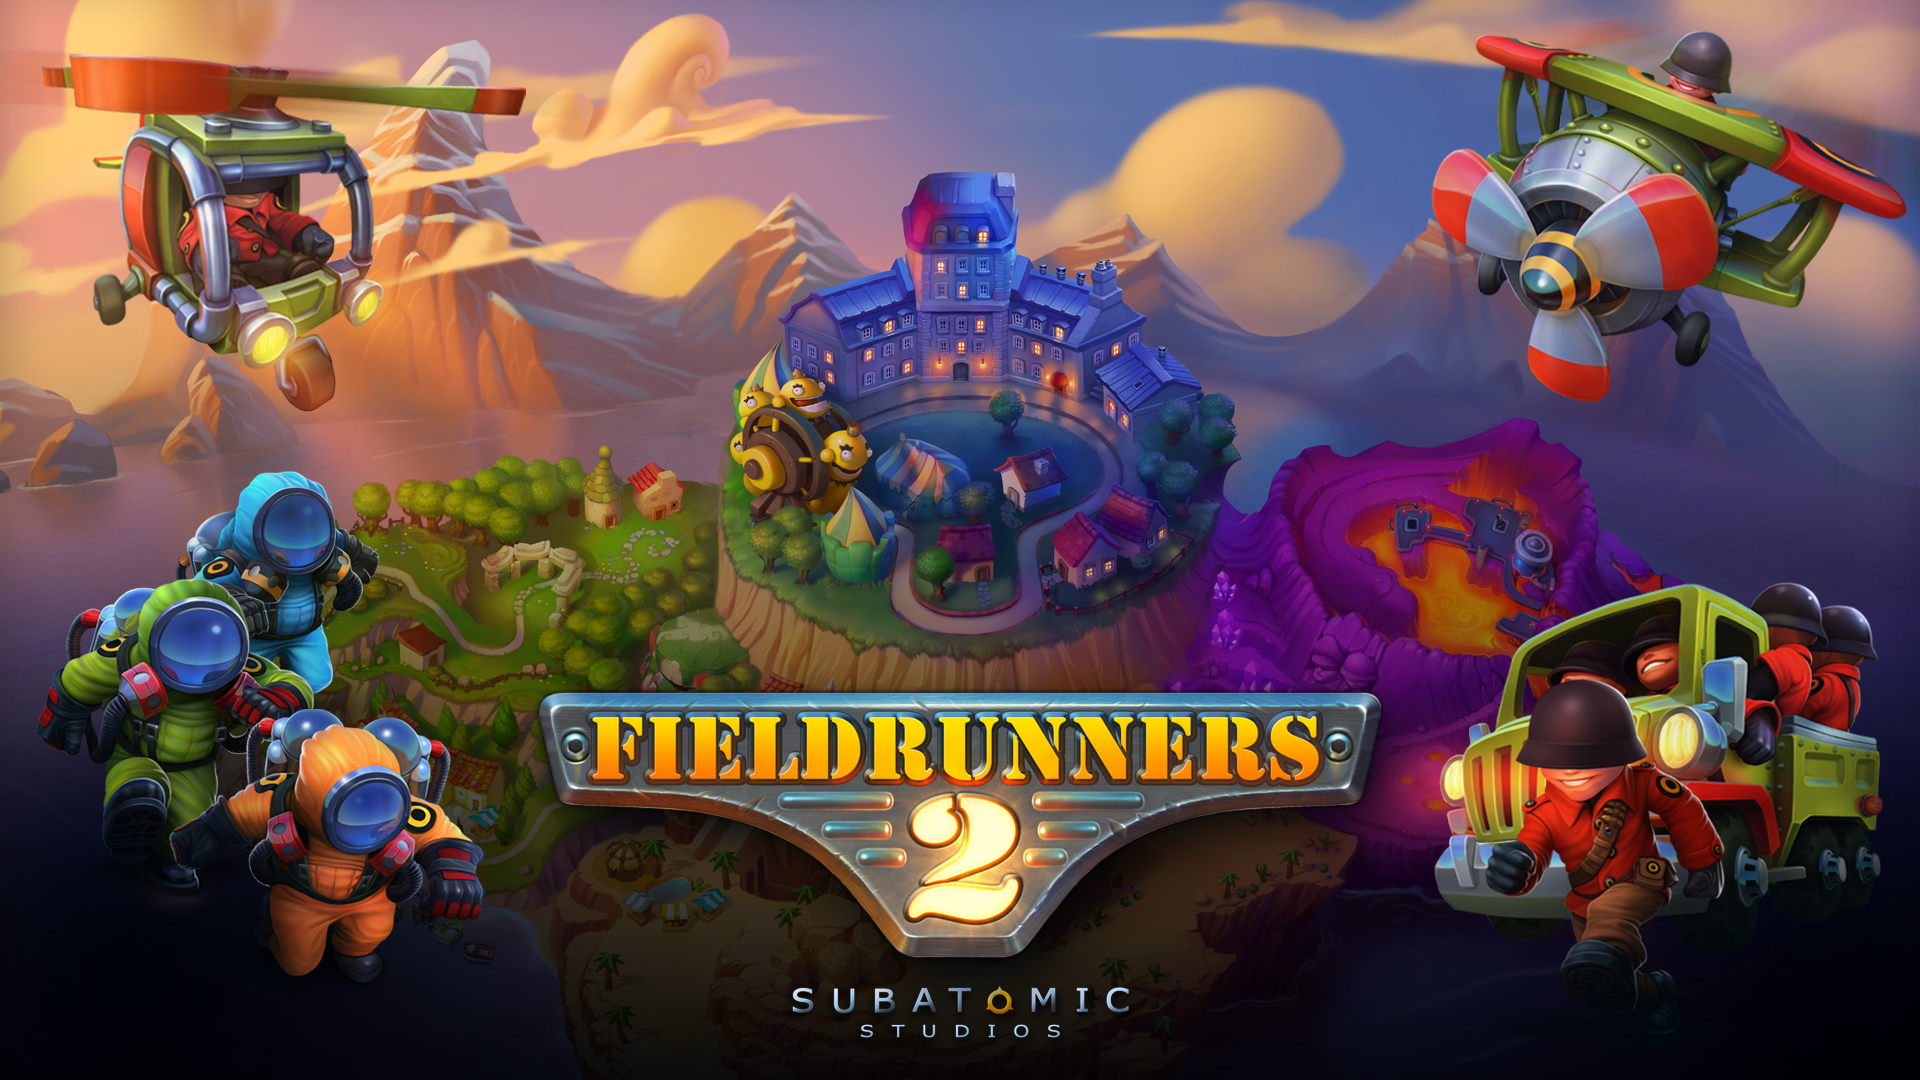 Wallpaper de Fieldrunners 2